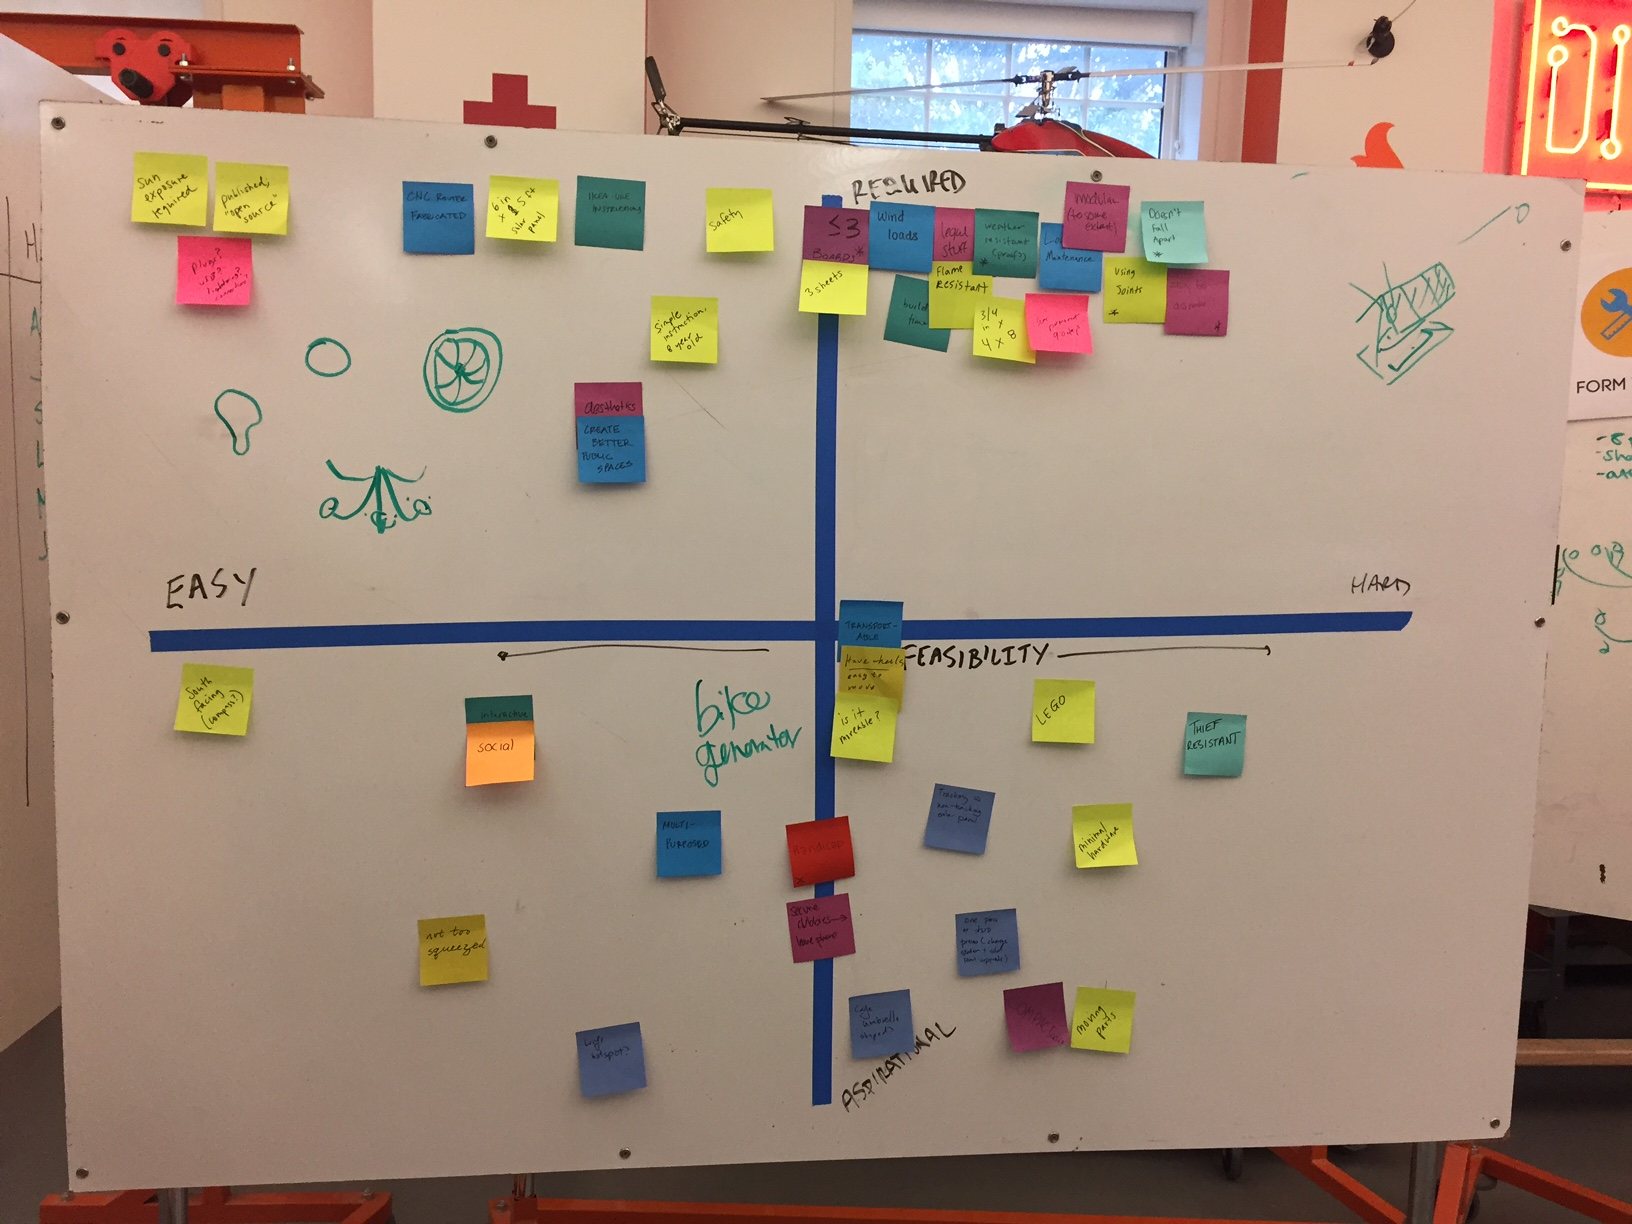 We used a 2x2 framework to understand where our priorities needed to be in developing features.